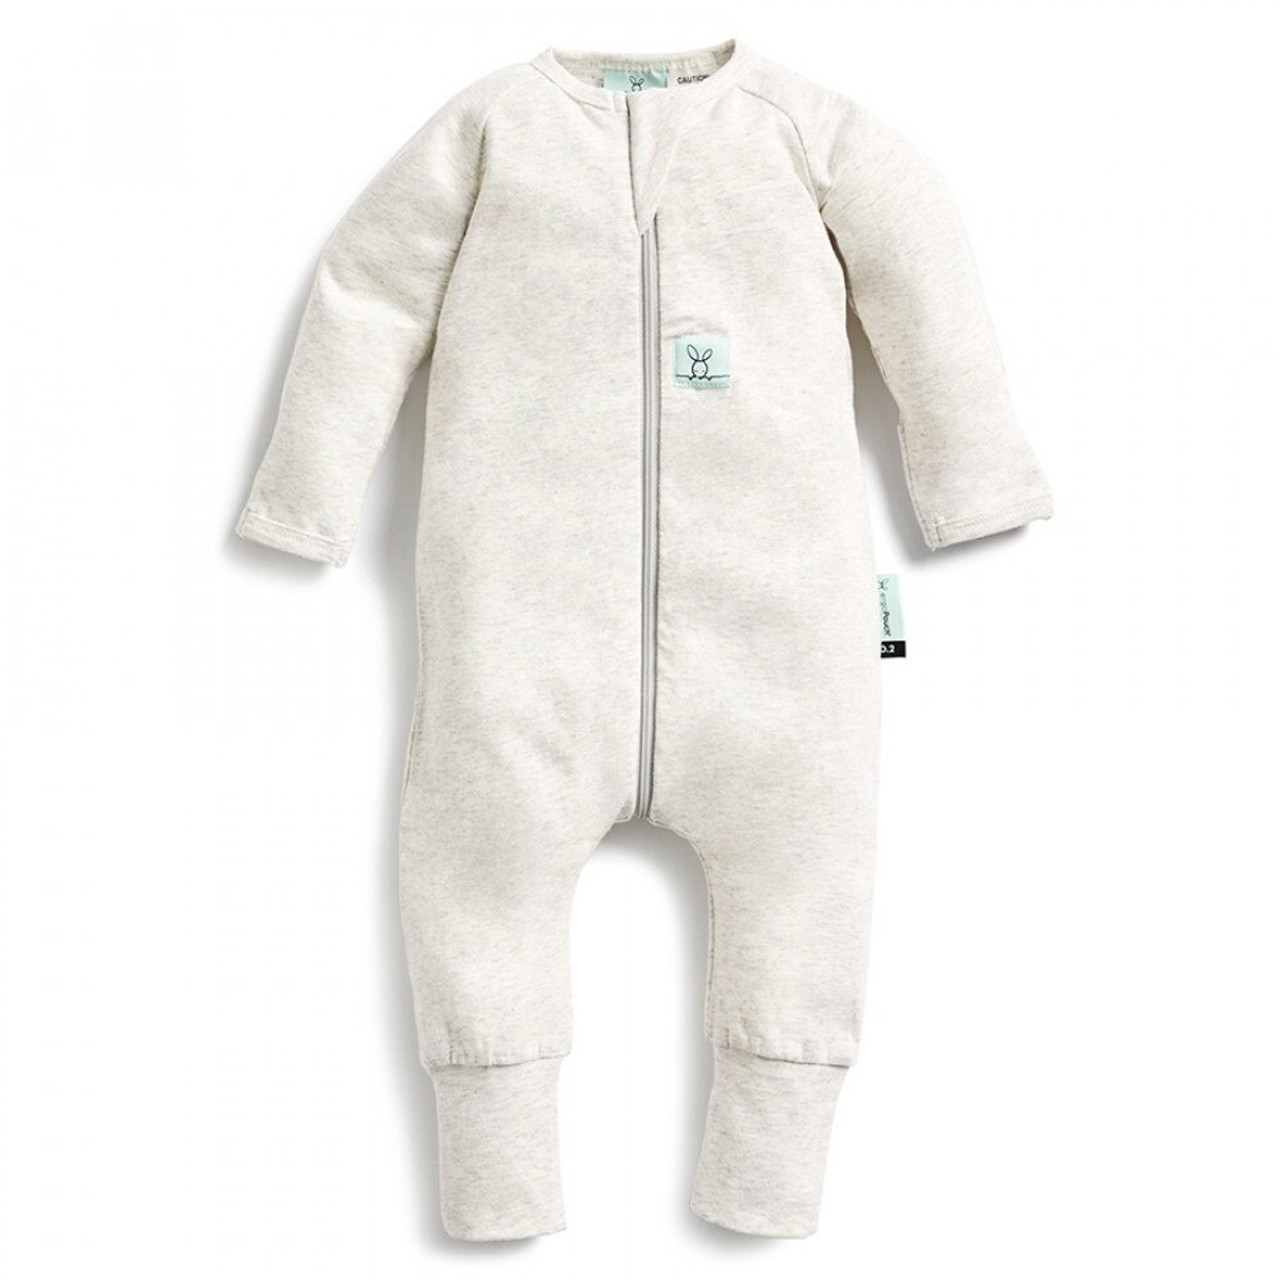 ErgoPouch Layers Long Sleeve 1.0 TOG Grey Marle at Baby Barn Discounts Mix and match our TOG-rated Layers, designed to be worn under our range of Cocoon Swaddle Bags, Sleeping Bags, Sleep Suit Bags and Sleep Onesies.